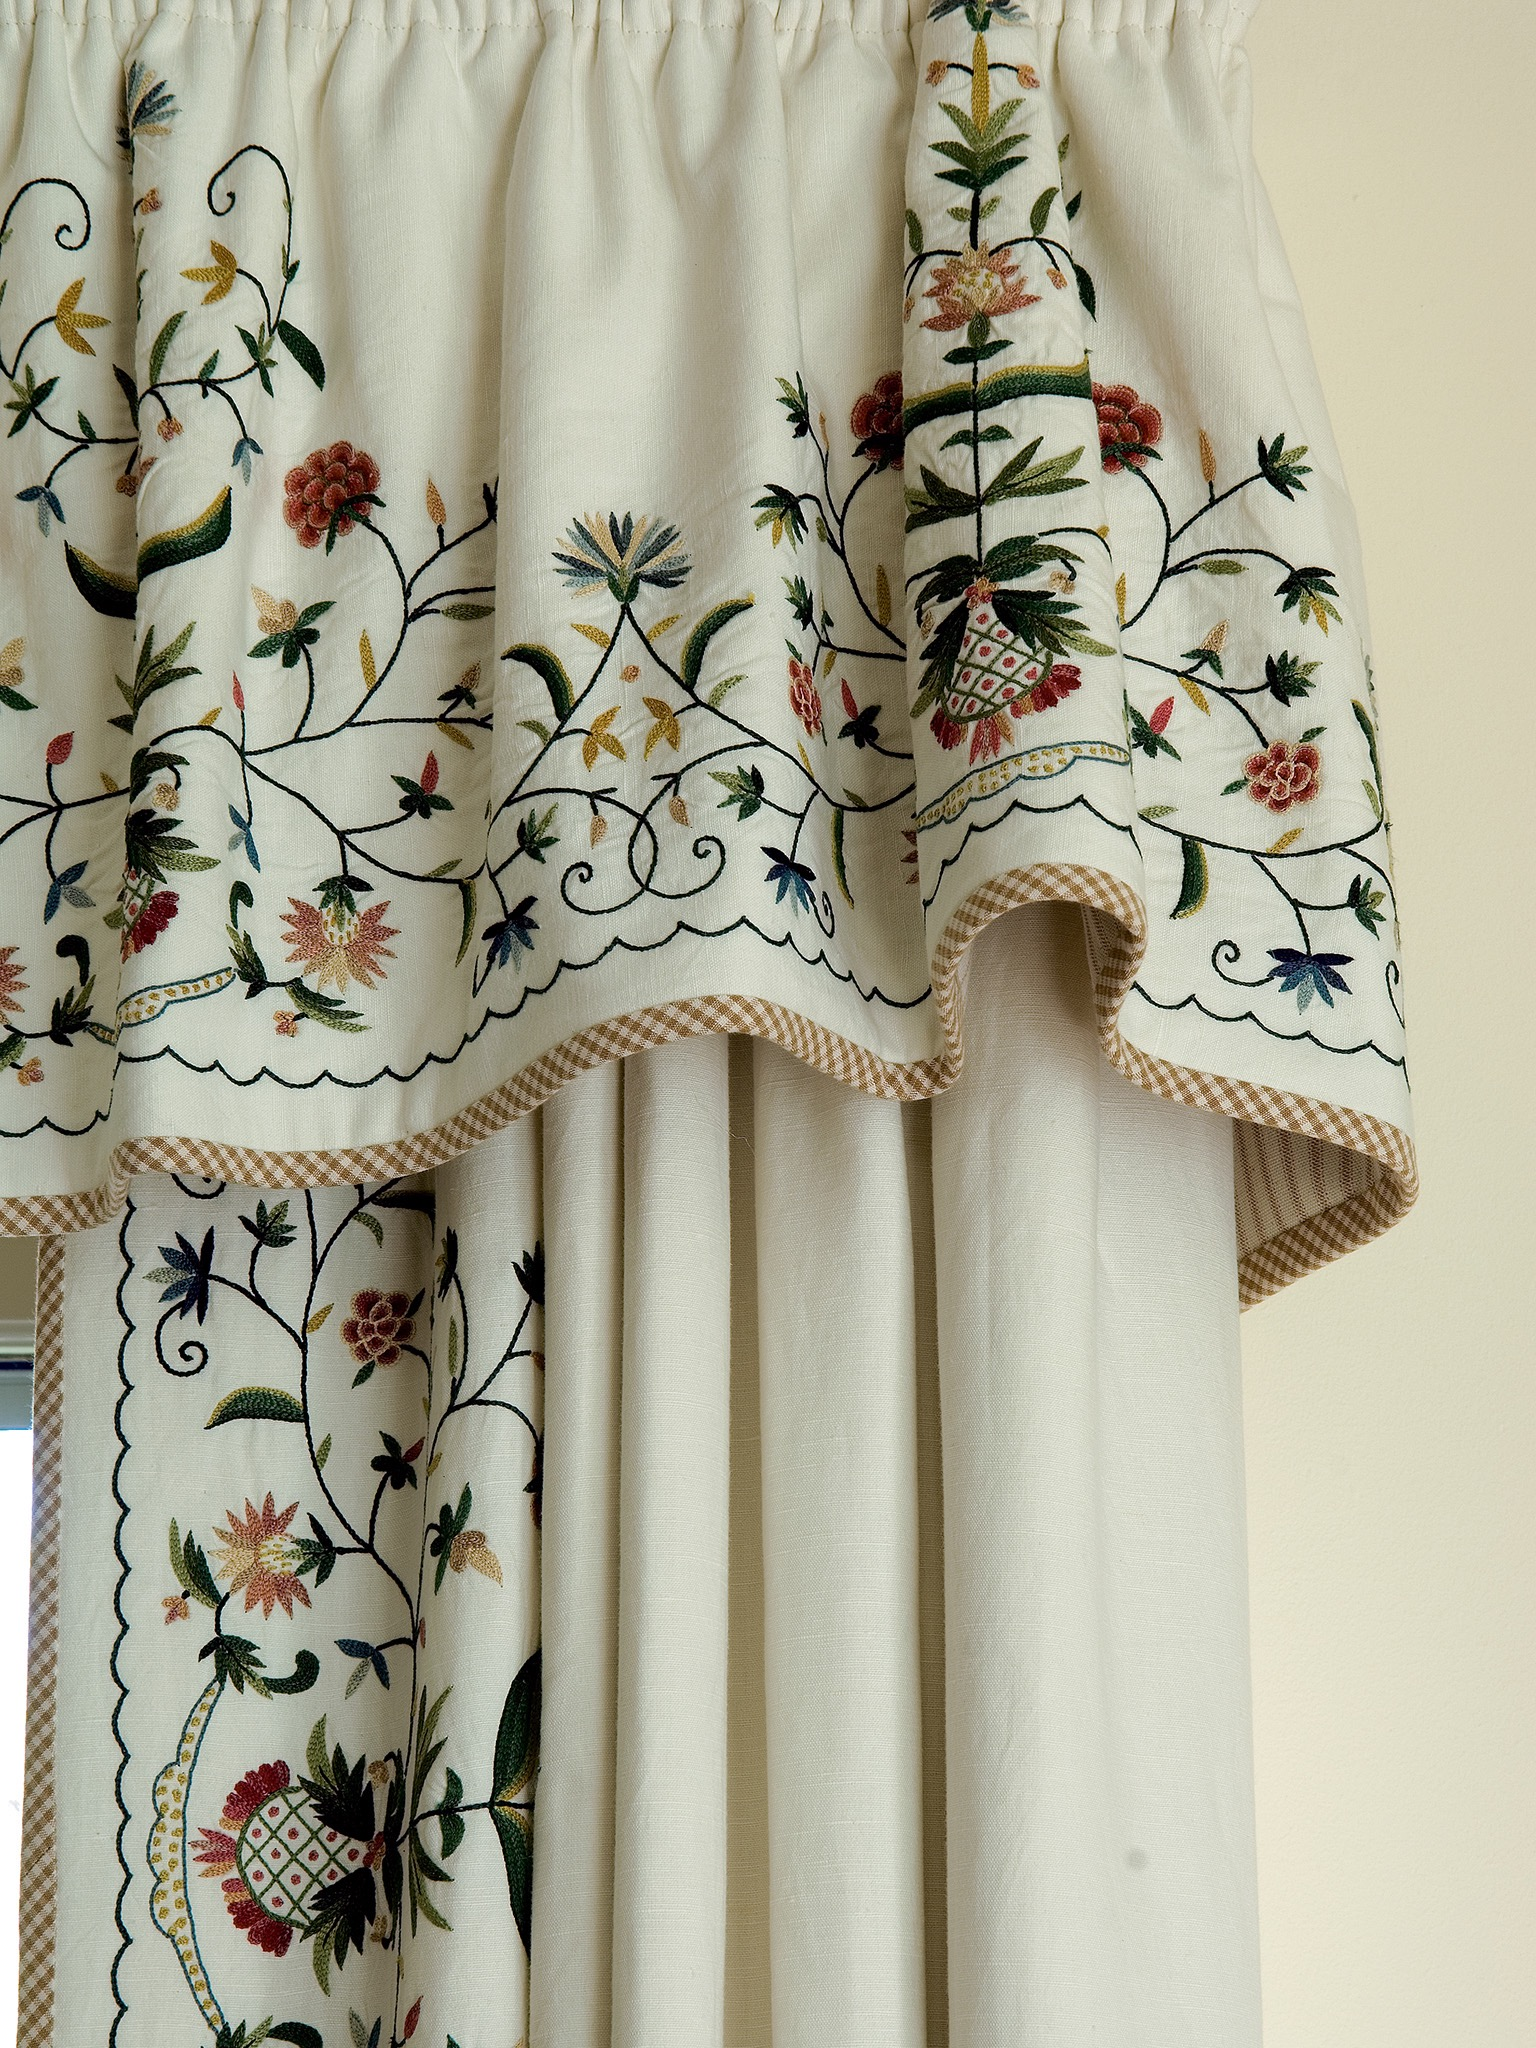 White Curtains With Floral Embroidery Detail (Image 33 of 35)